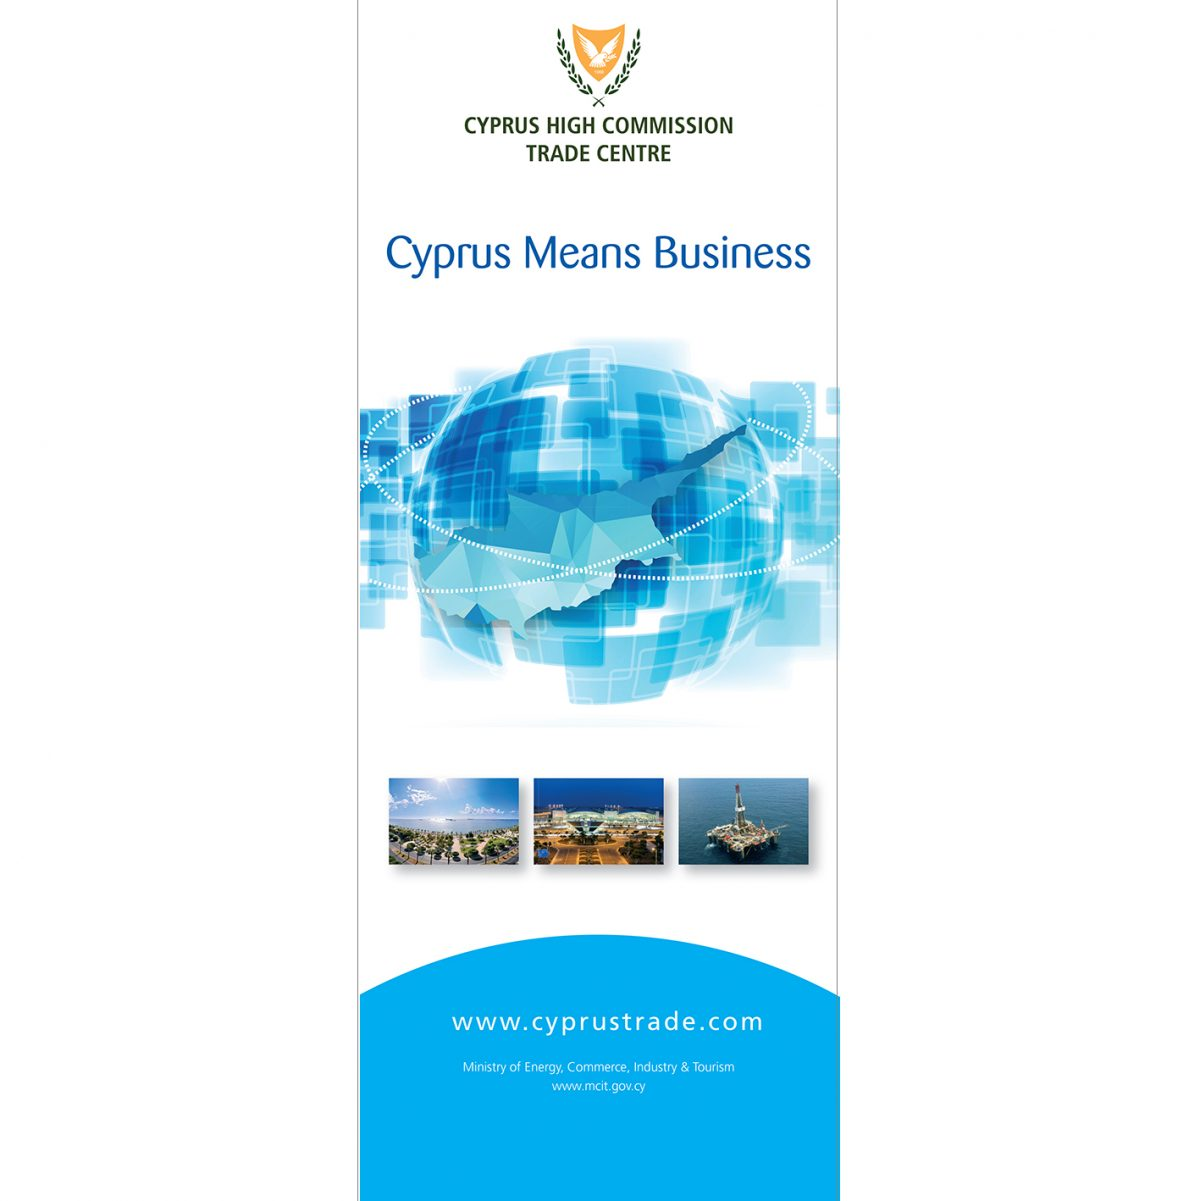 Cyprus Trade All 3 Banners - 18 Apr.indd